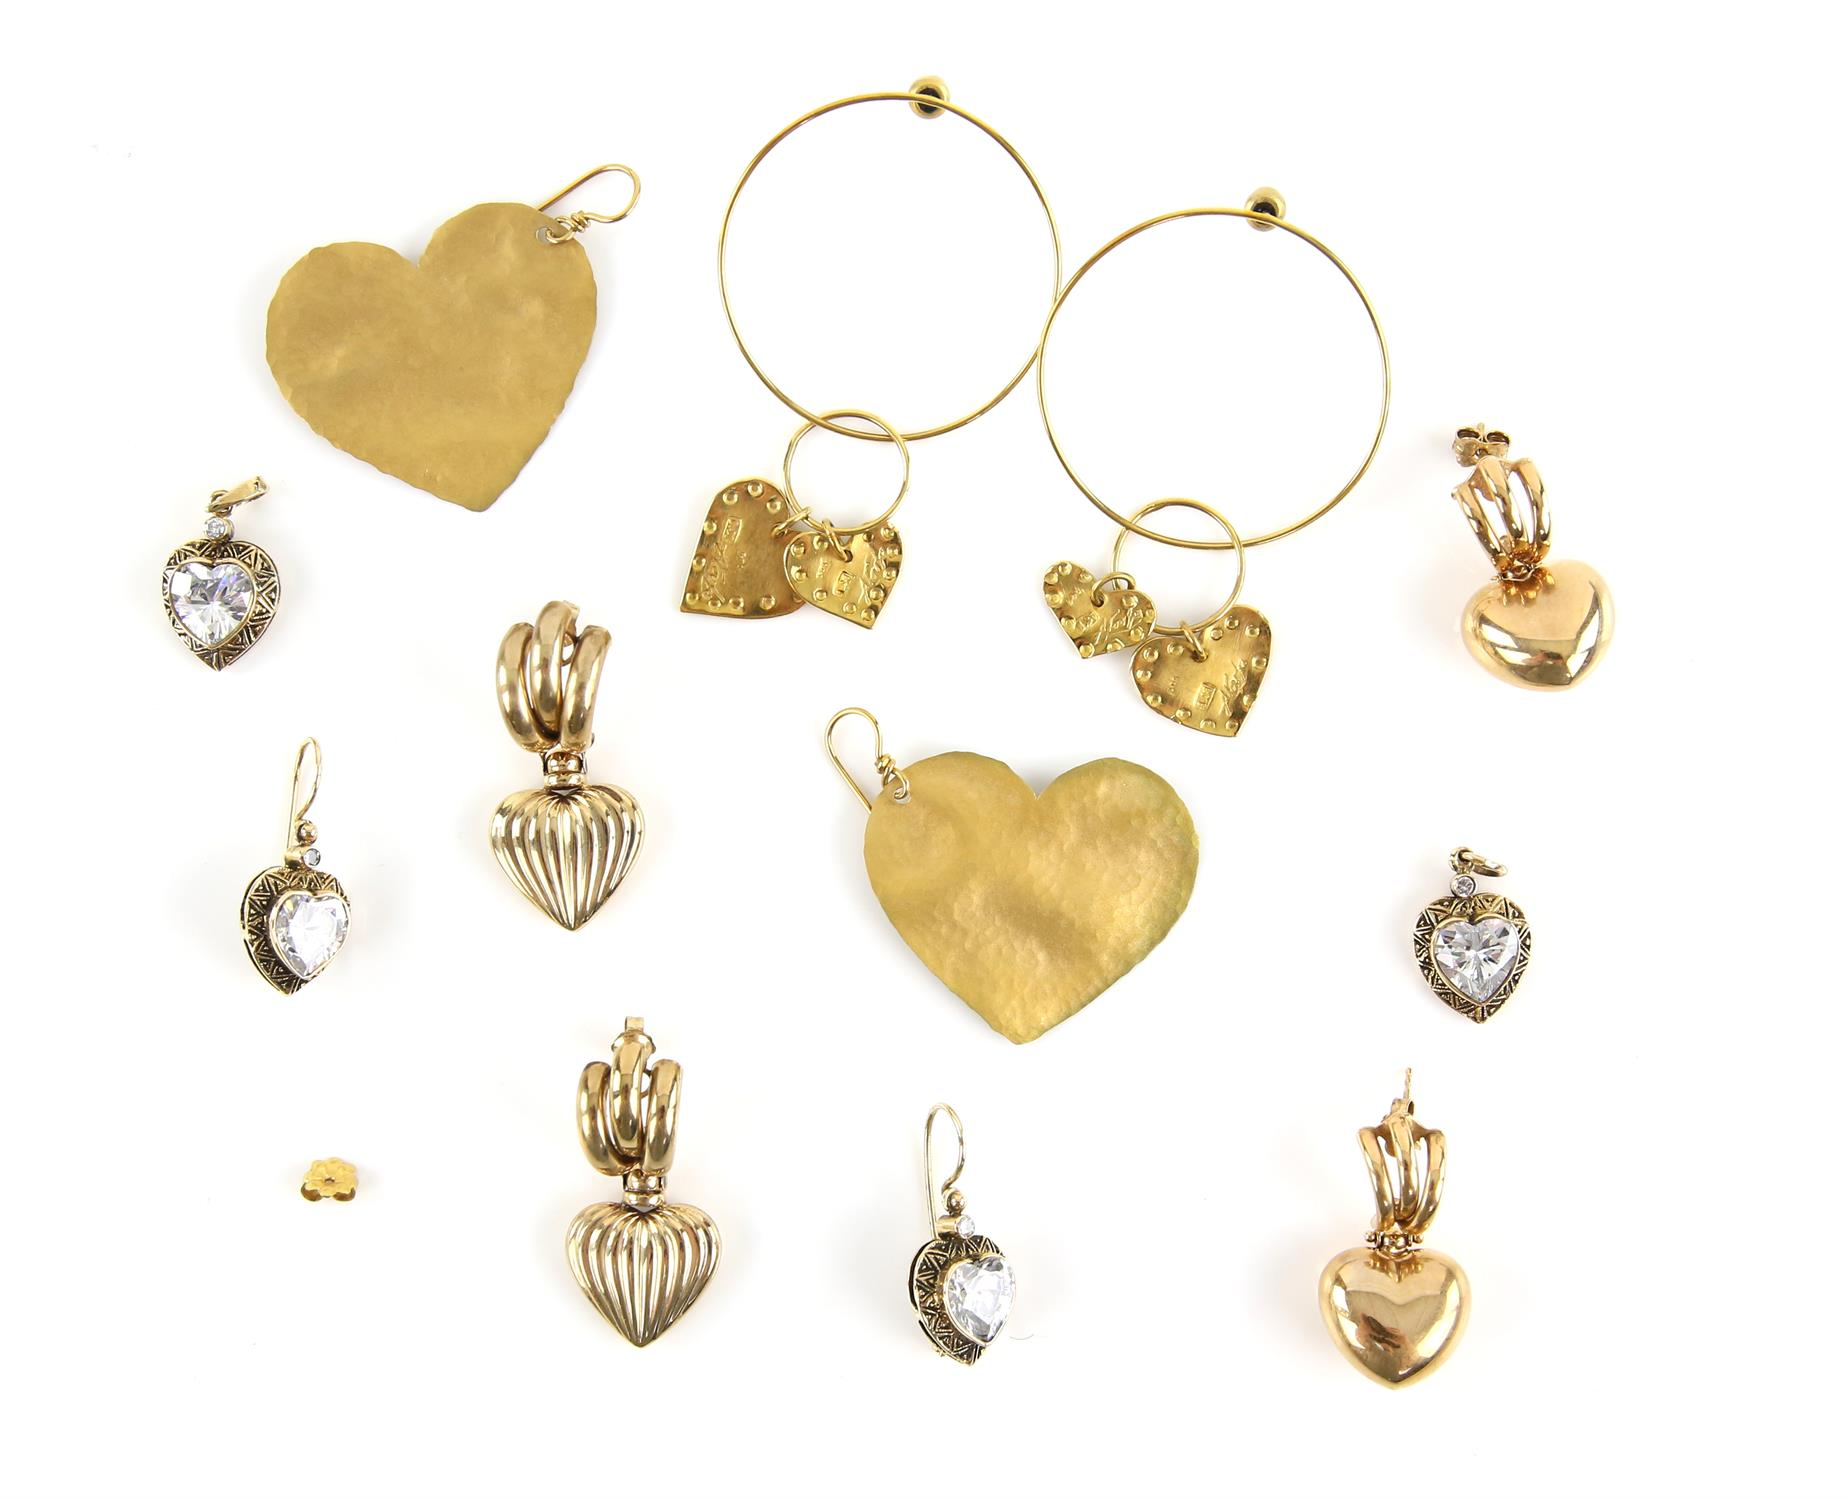 Selection of heart jewellery, including two pair of puff heart drop earrings, in 9 ct,